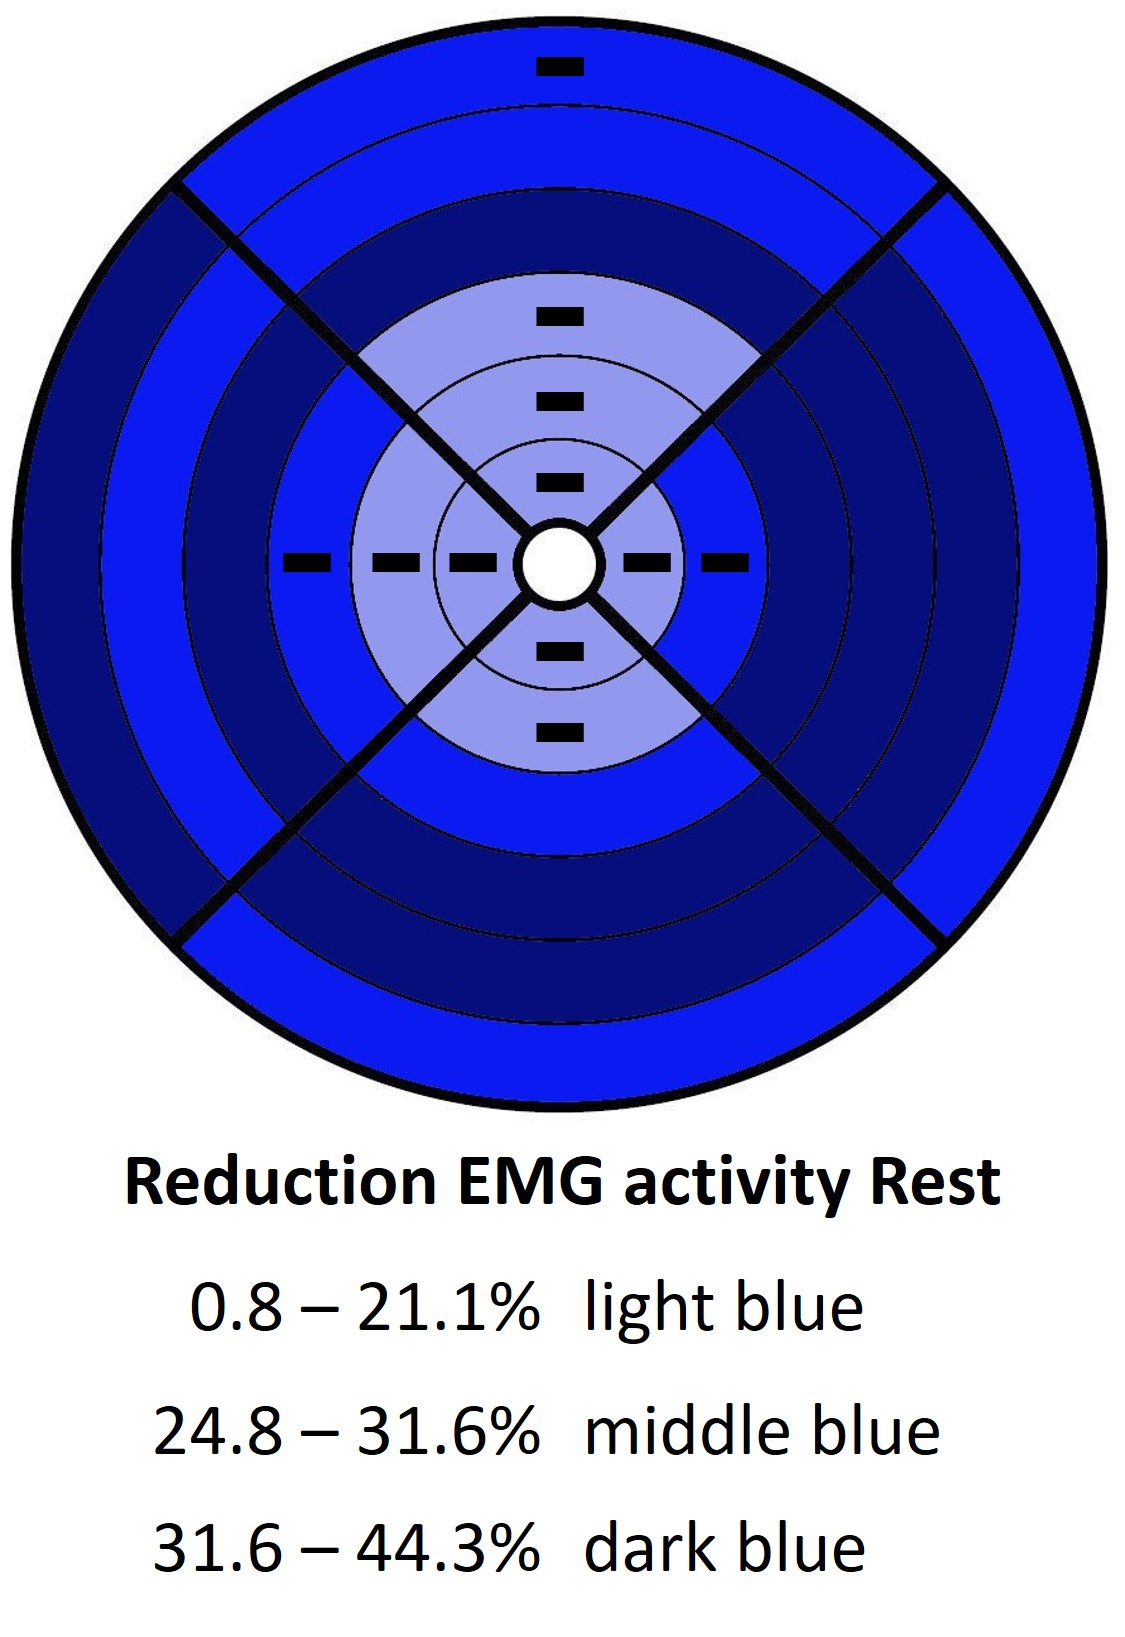 Differences in EMG Activity of the Pelvic Floor Muscles in Women with Com- plaints of the Overactive Bladder Syndrome and Healthy Women